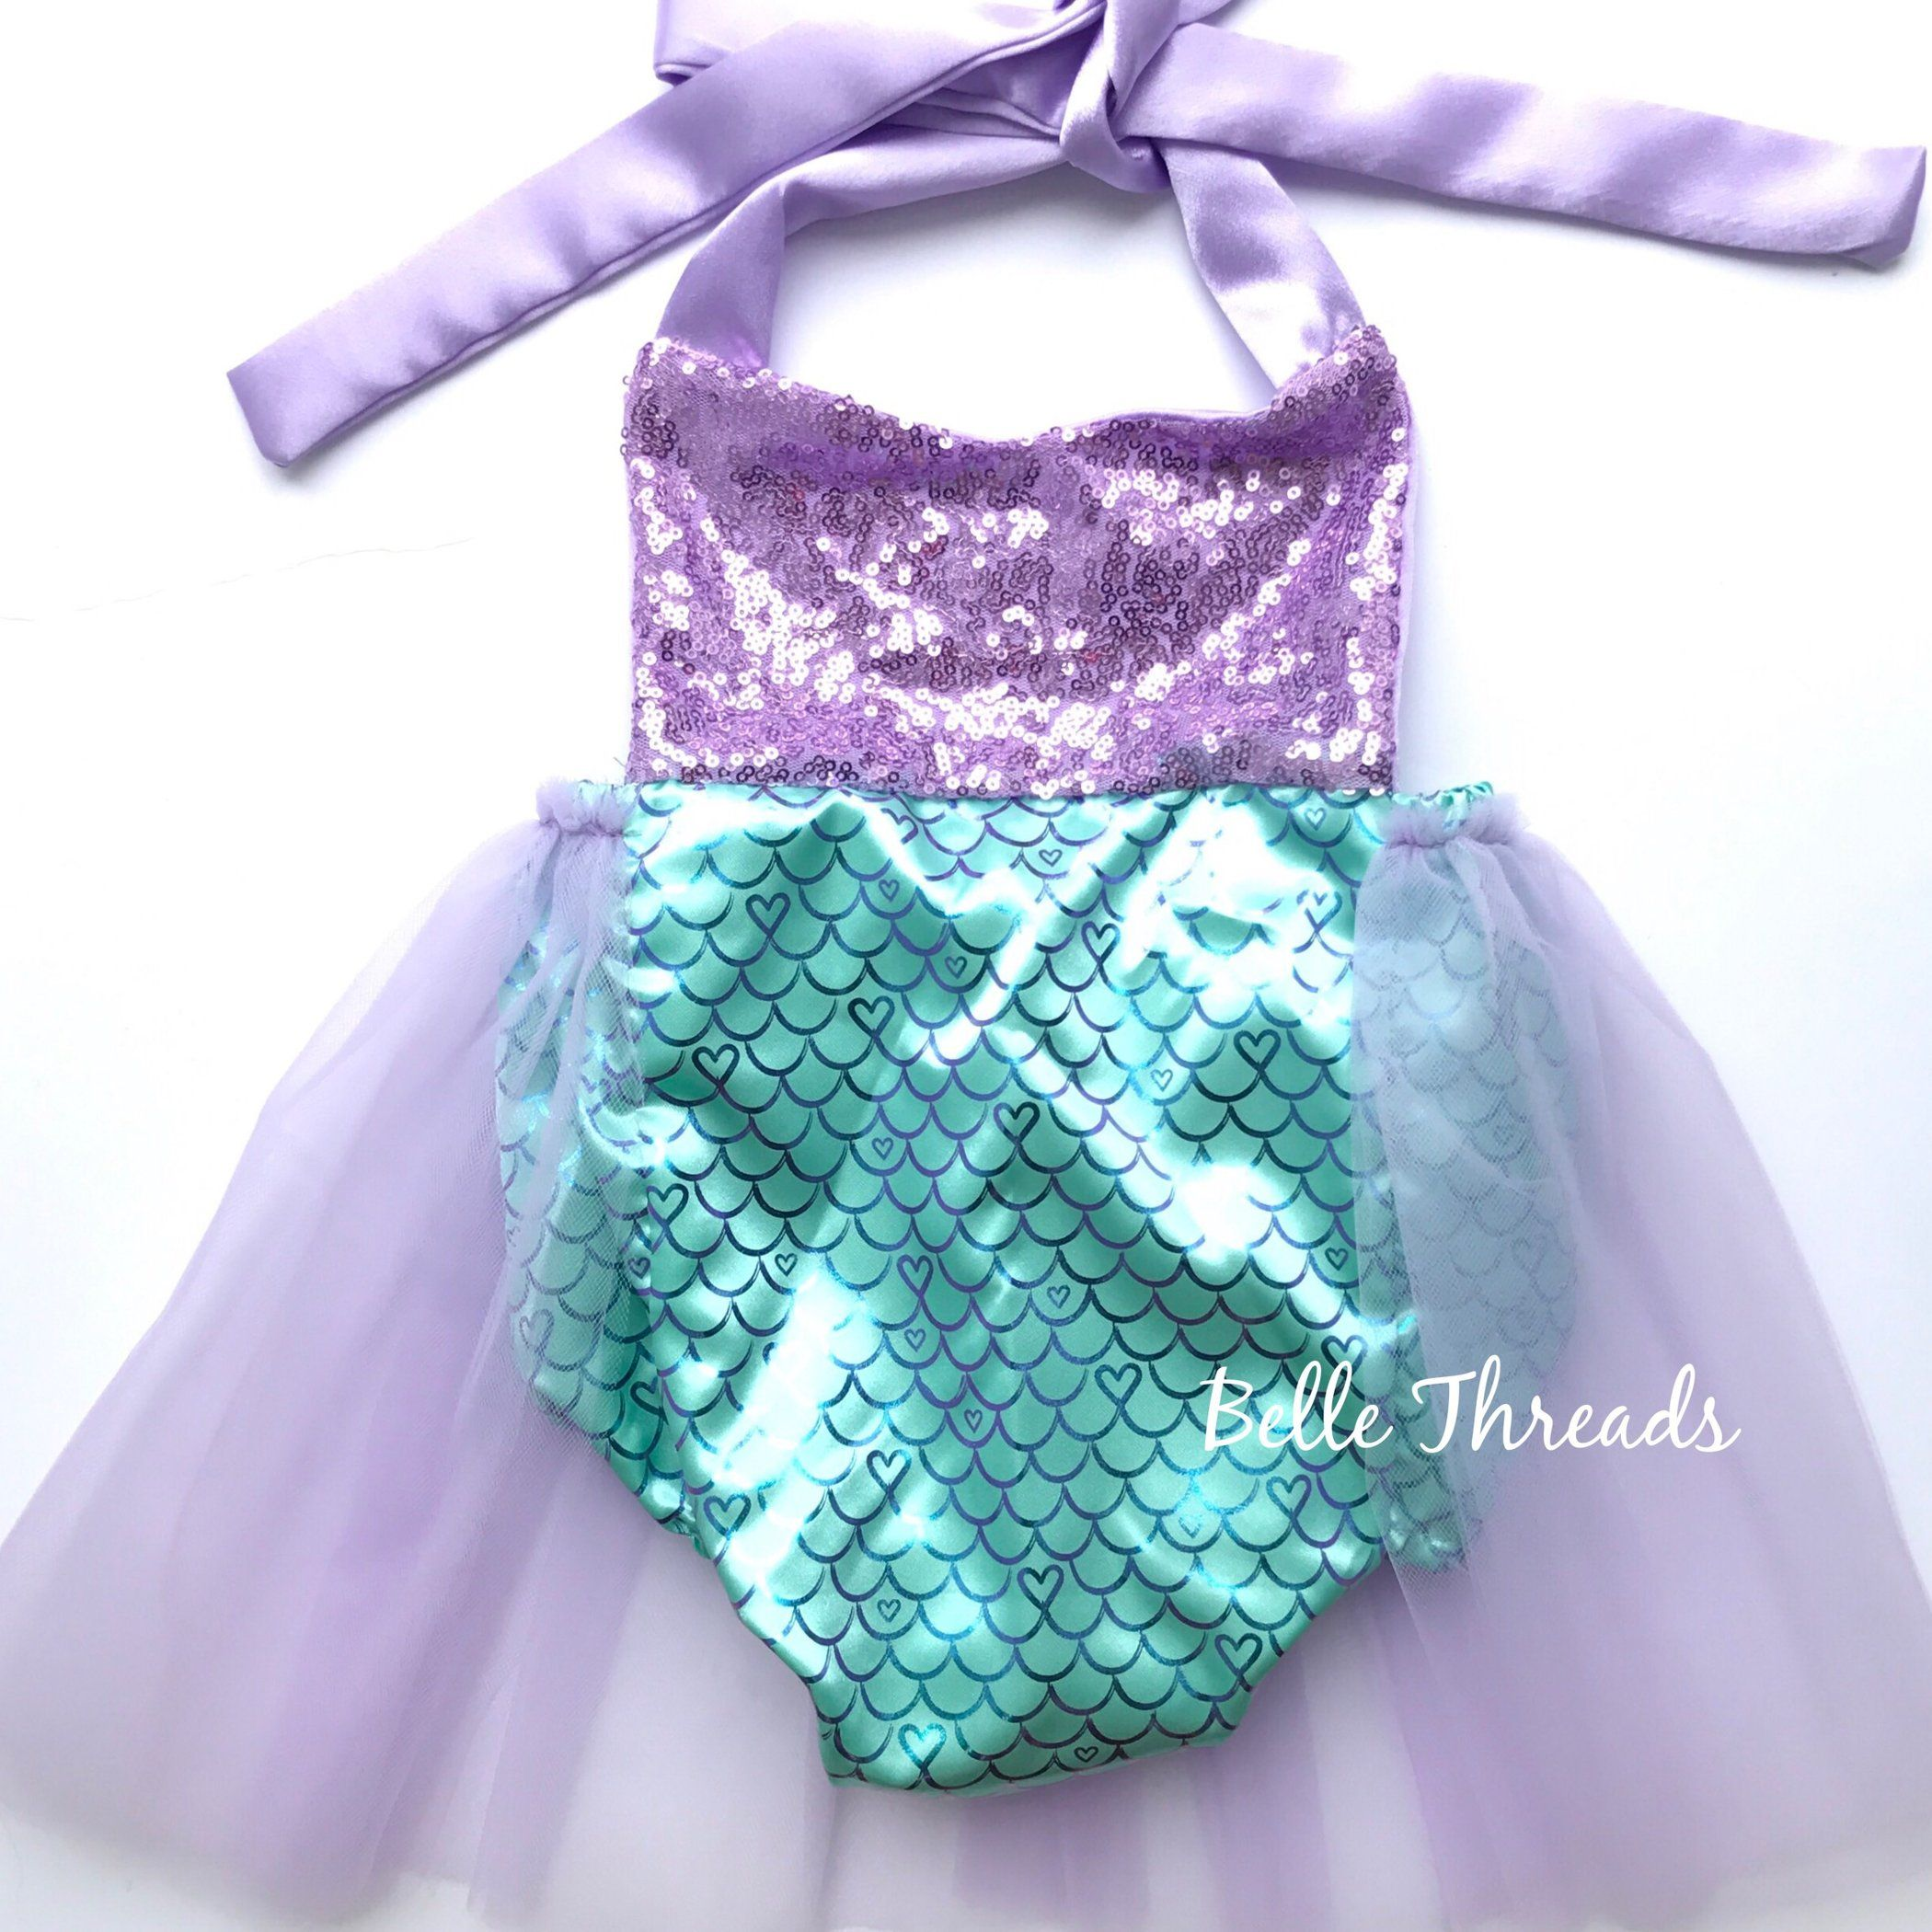 e942589bf79f Handmade by Belle Threads. .  mermaidtutu  mermaidtutudress  mermaidoutfit   mermaidromper  mermaidparty